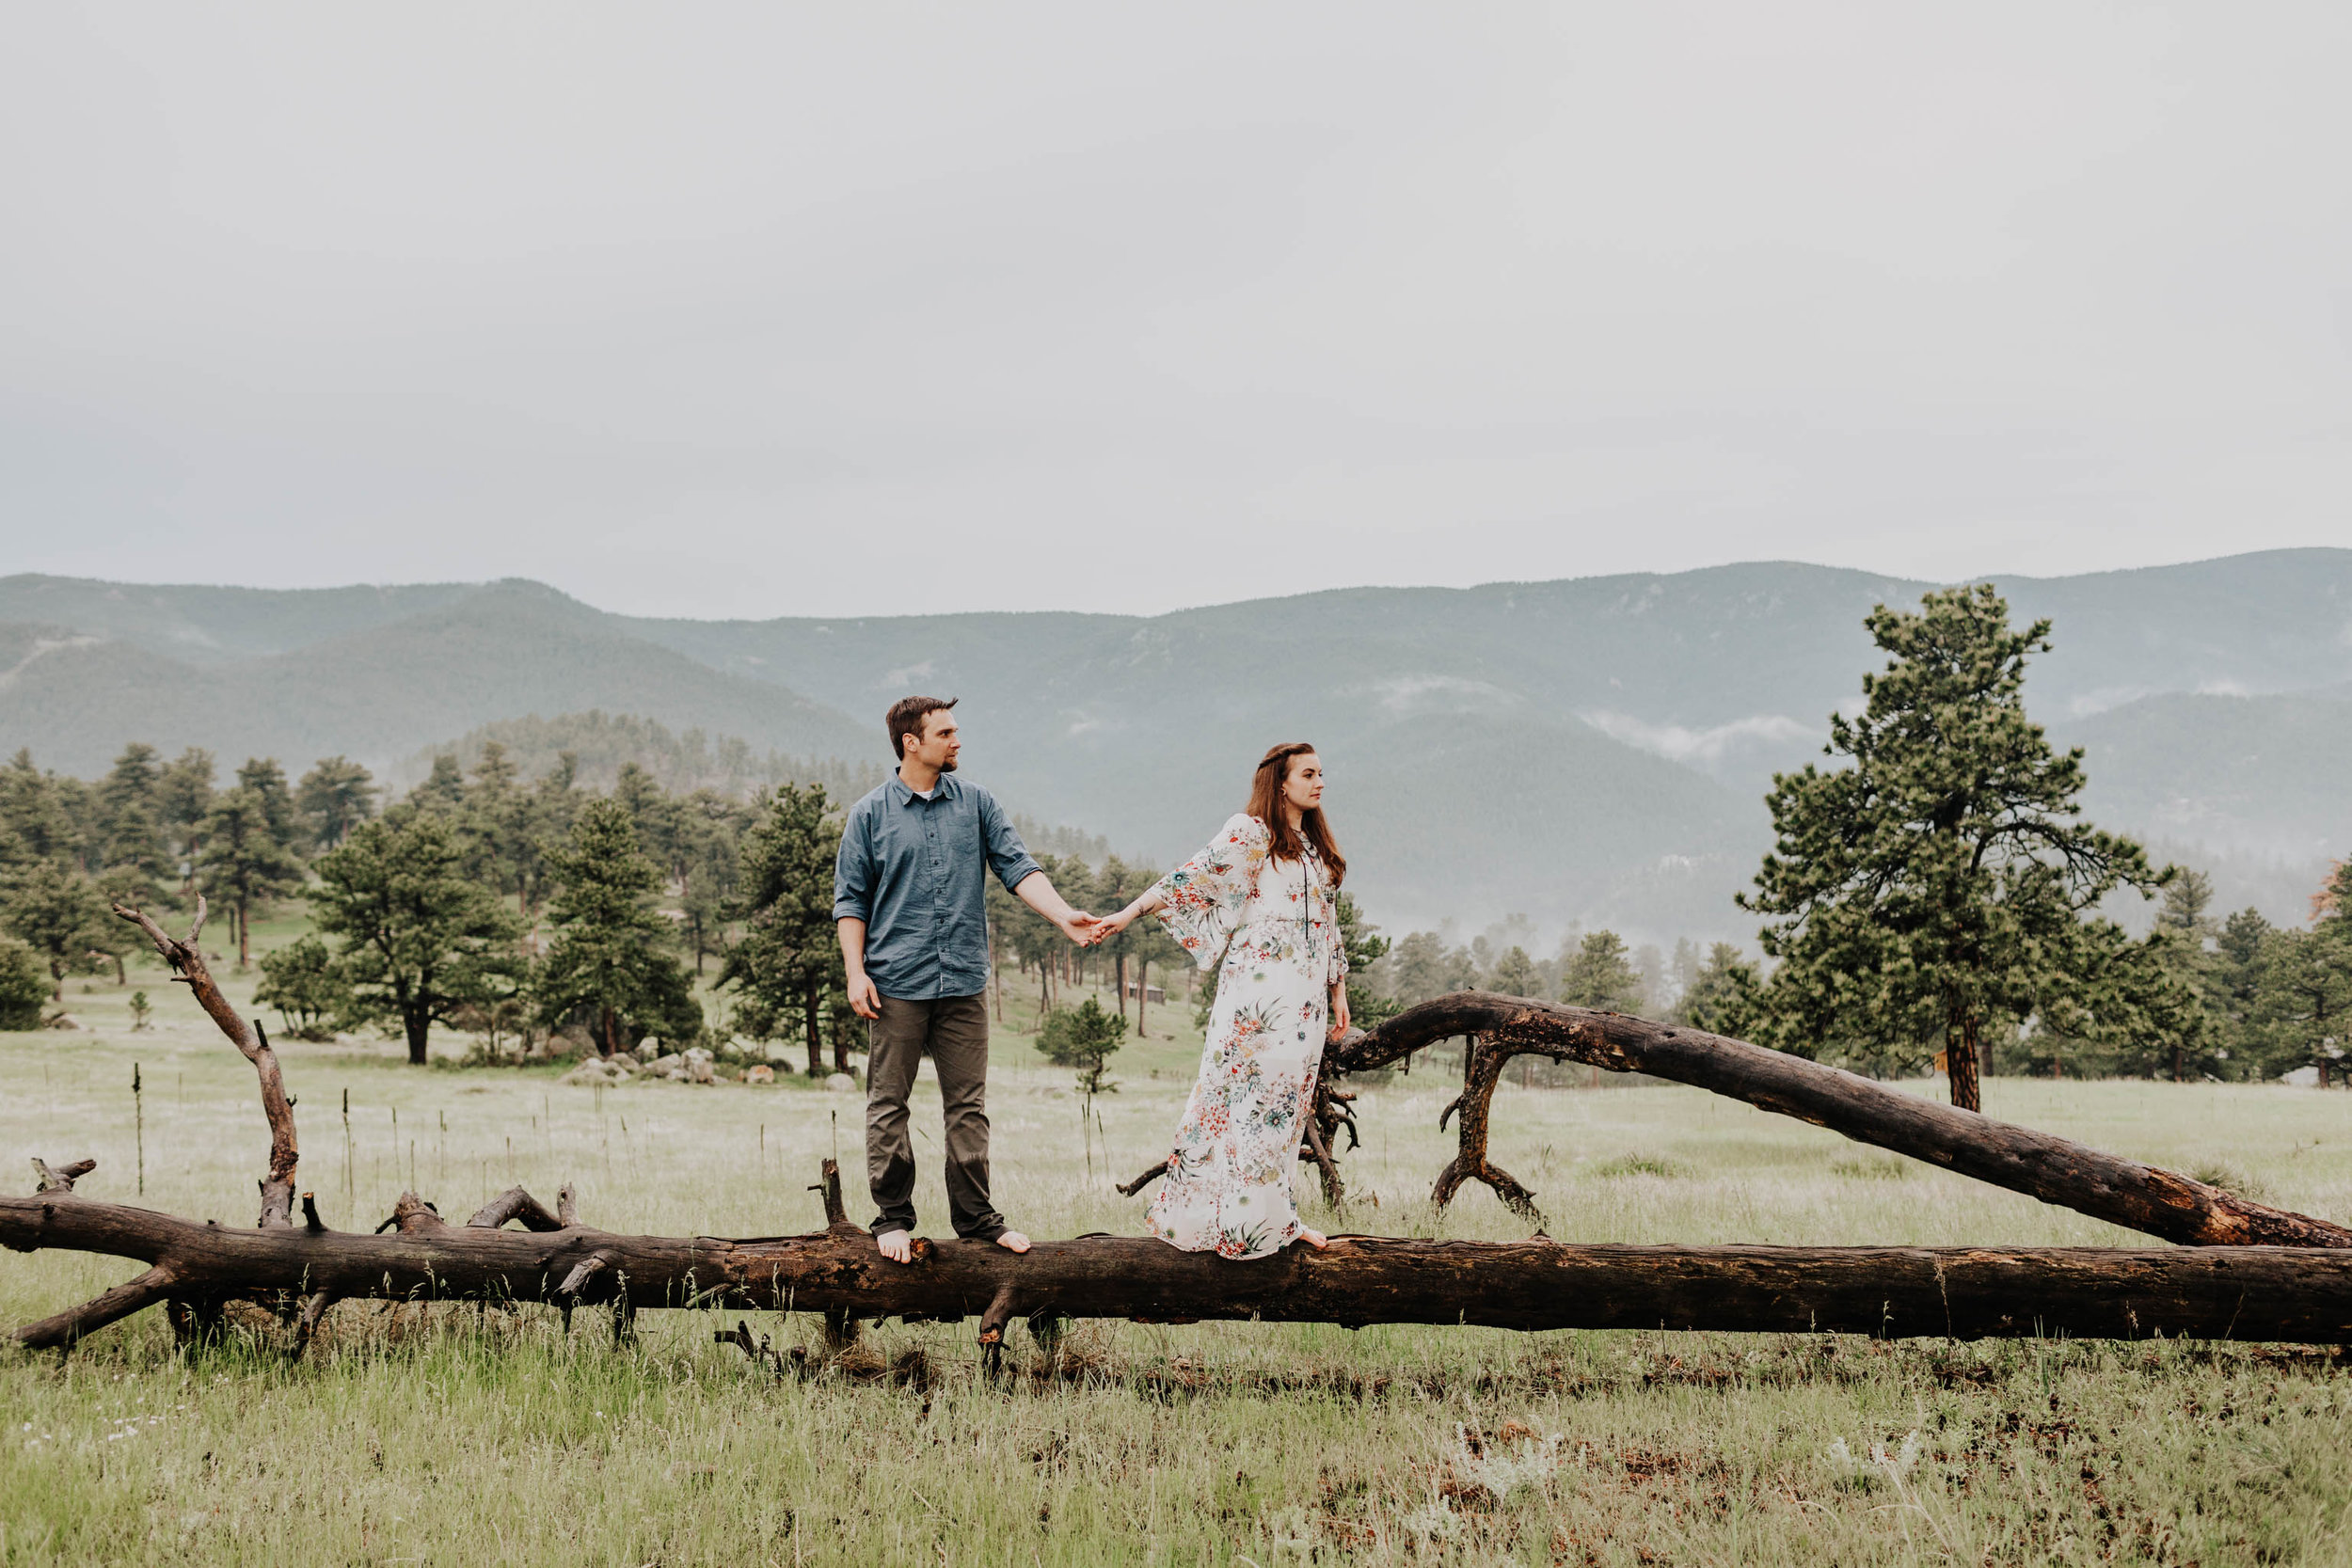 Sheena_Shahangian_Photography_Engagement_Photo_Shoot_Shelby_and_Andrew_Boulder_Colorado-89.jpg